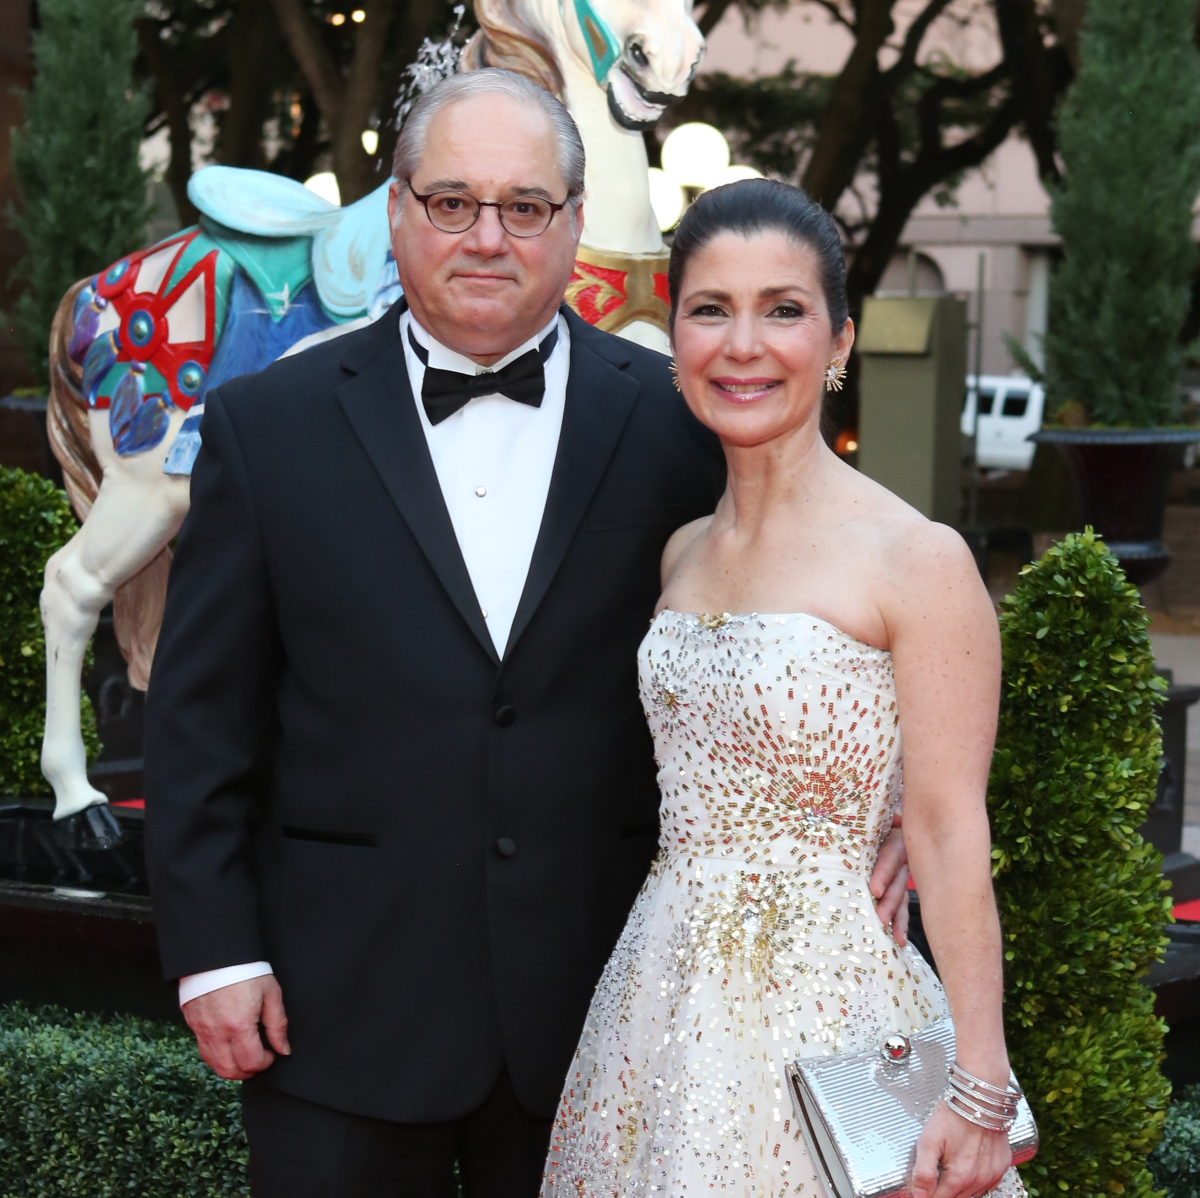 Houston Grand Opera Ball, 4/16  Tony Petrello, Cynthia Petrello